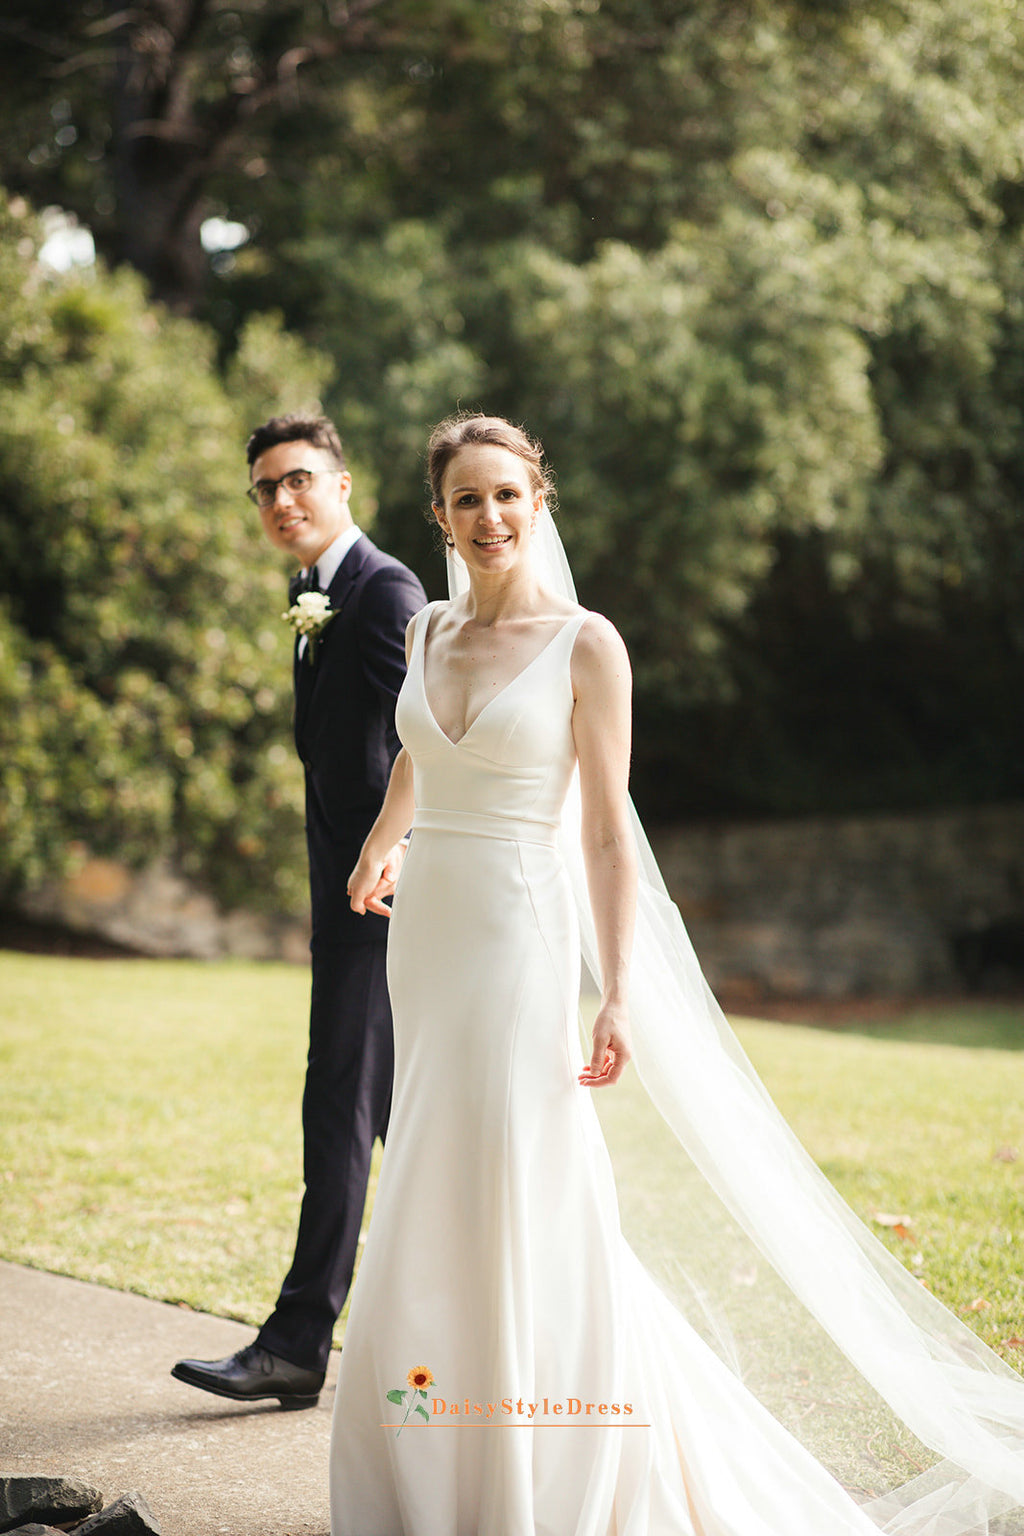 fitted v-neckline wedding dress